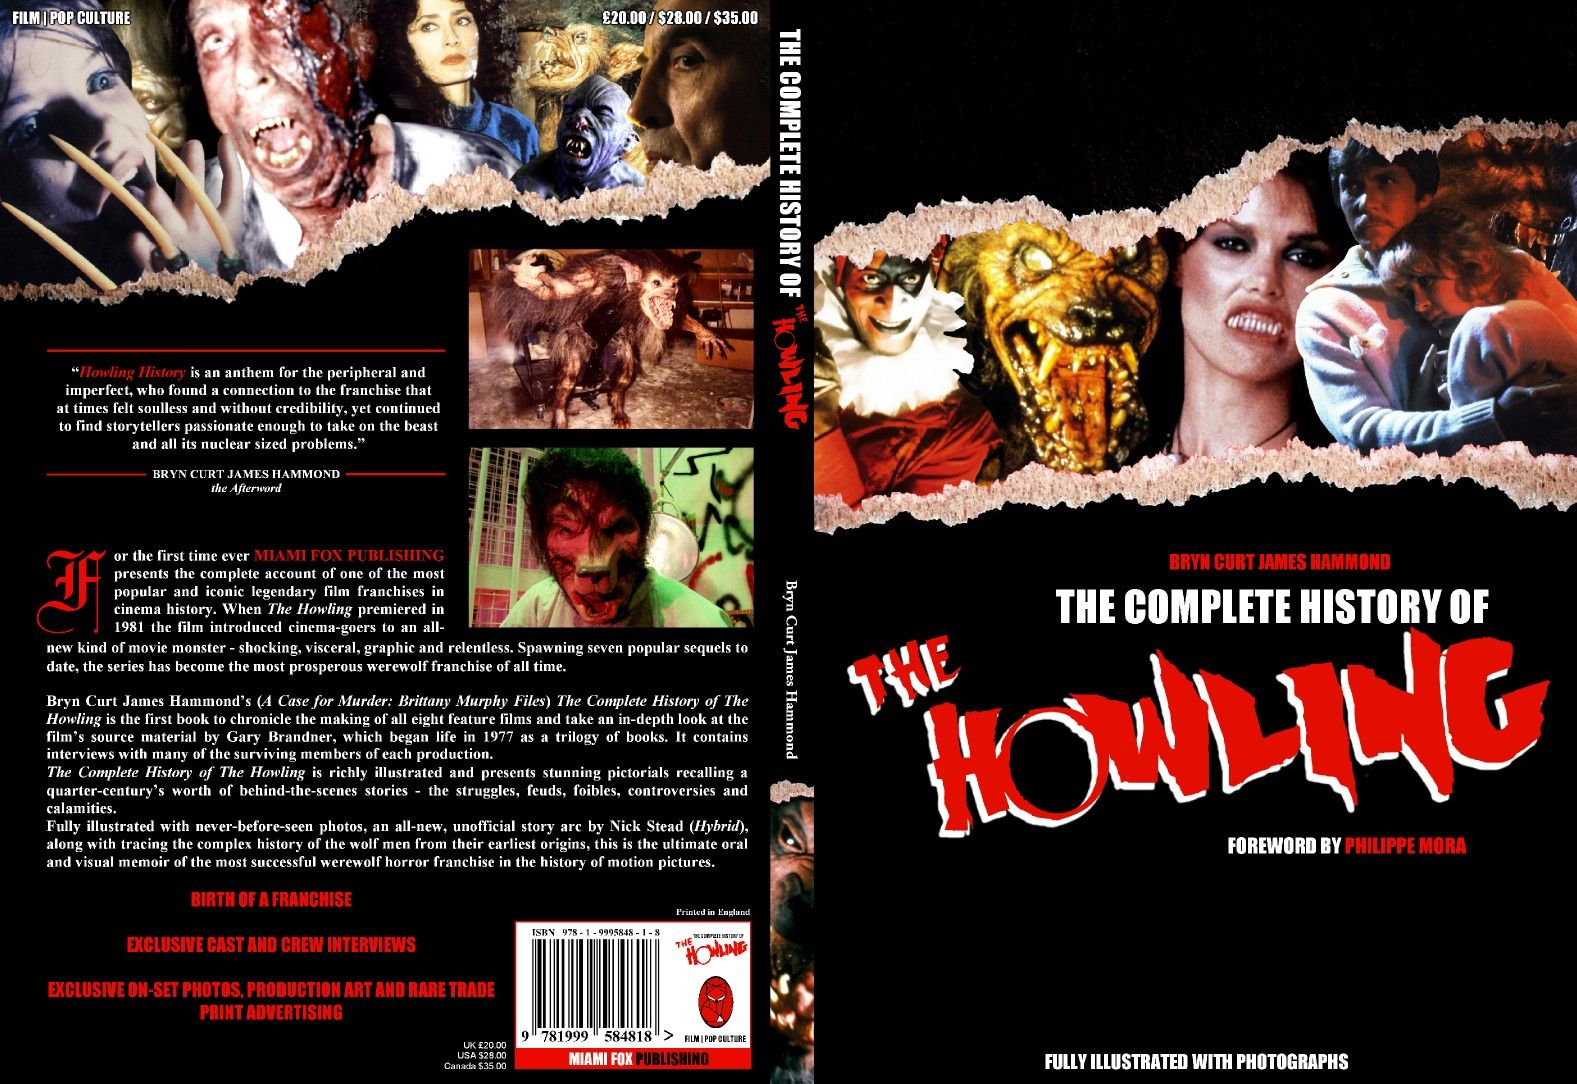 This is pretty slick. The Complete History of The Howling